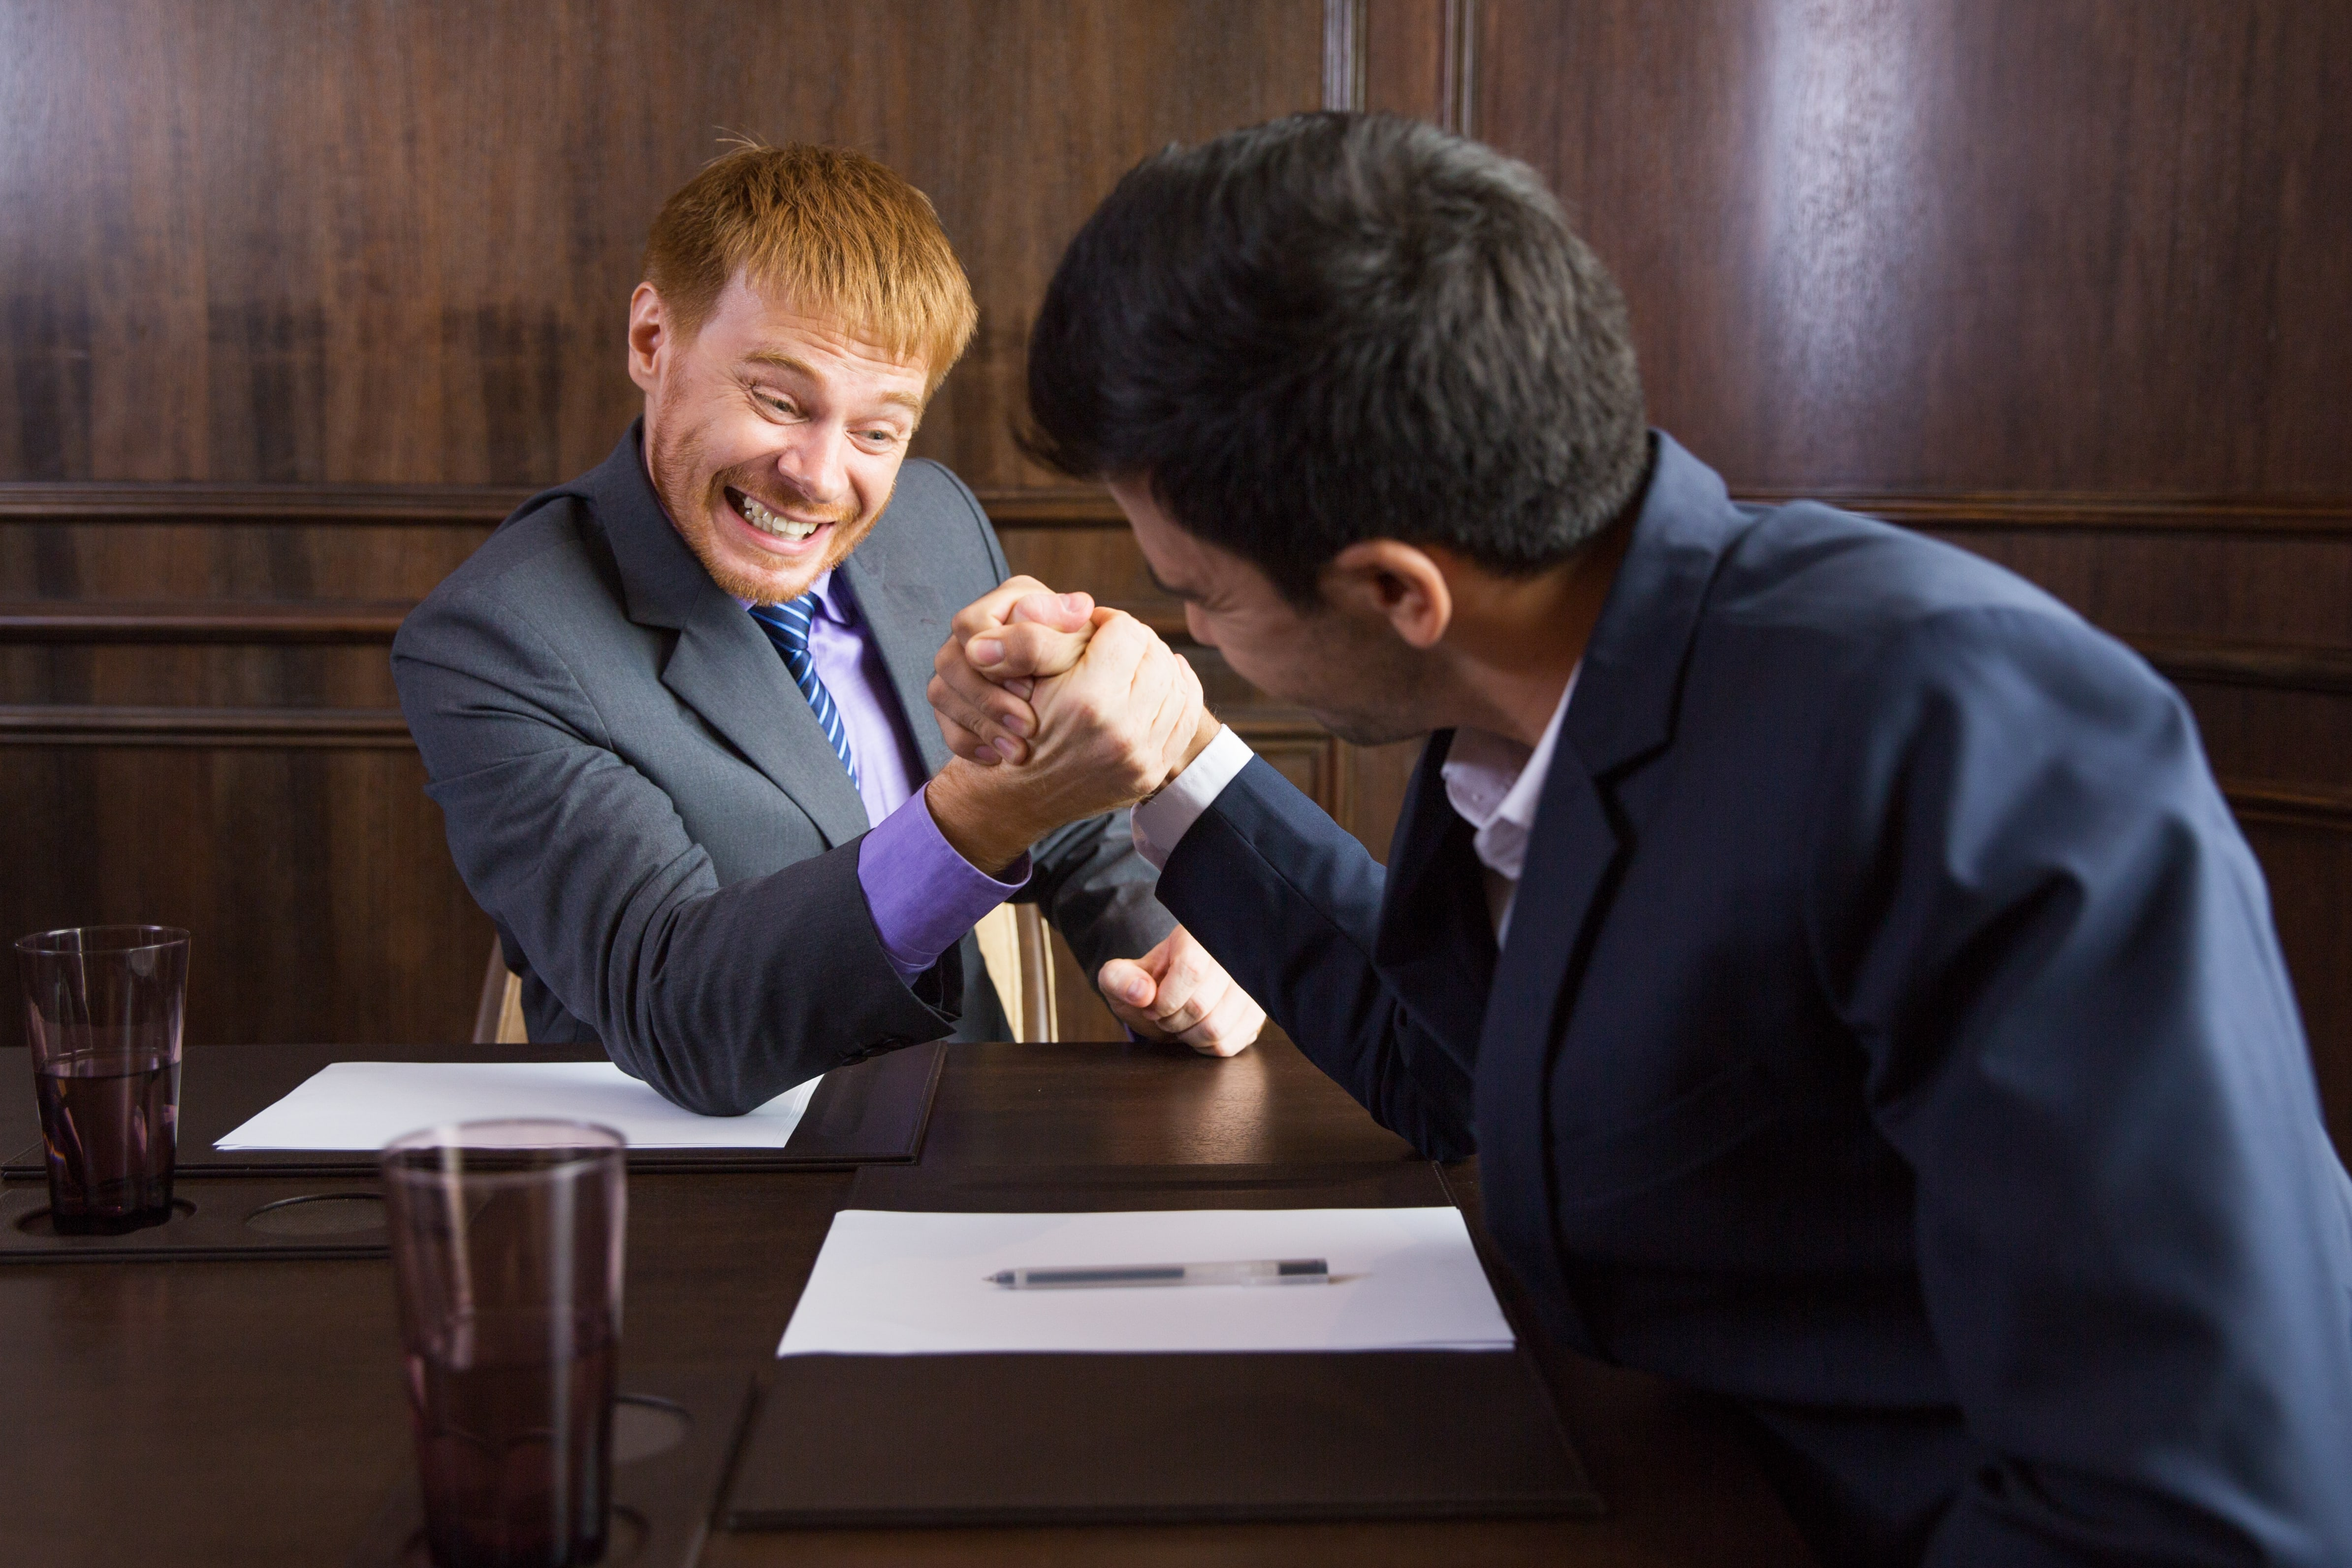 Resolving Workplace Conflicts